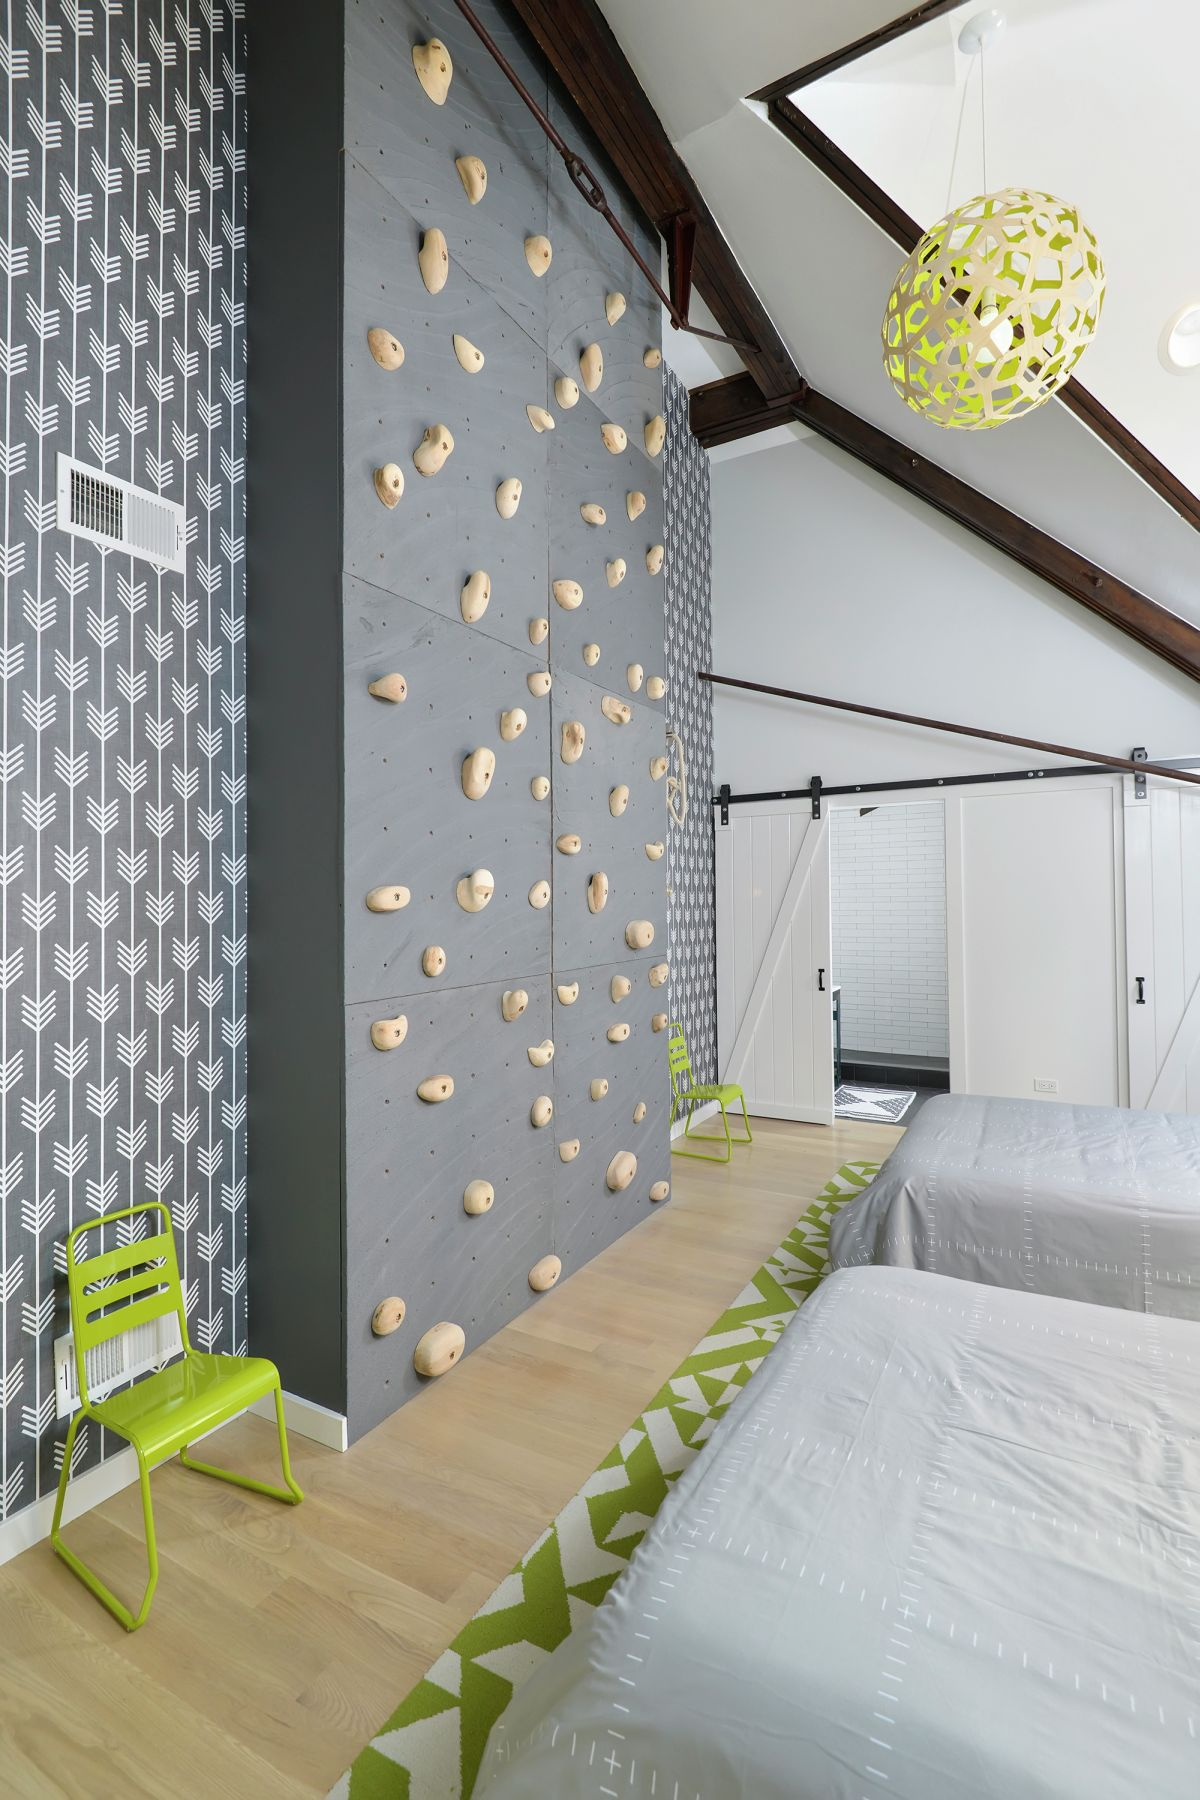 Chicago church home featuring a climbing wall in bedroom